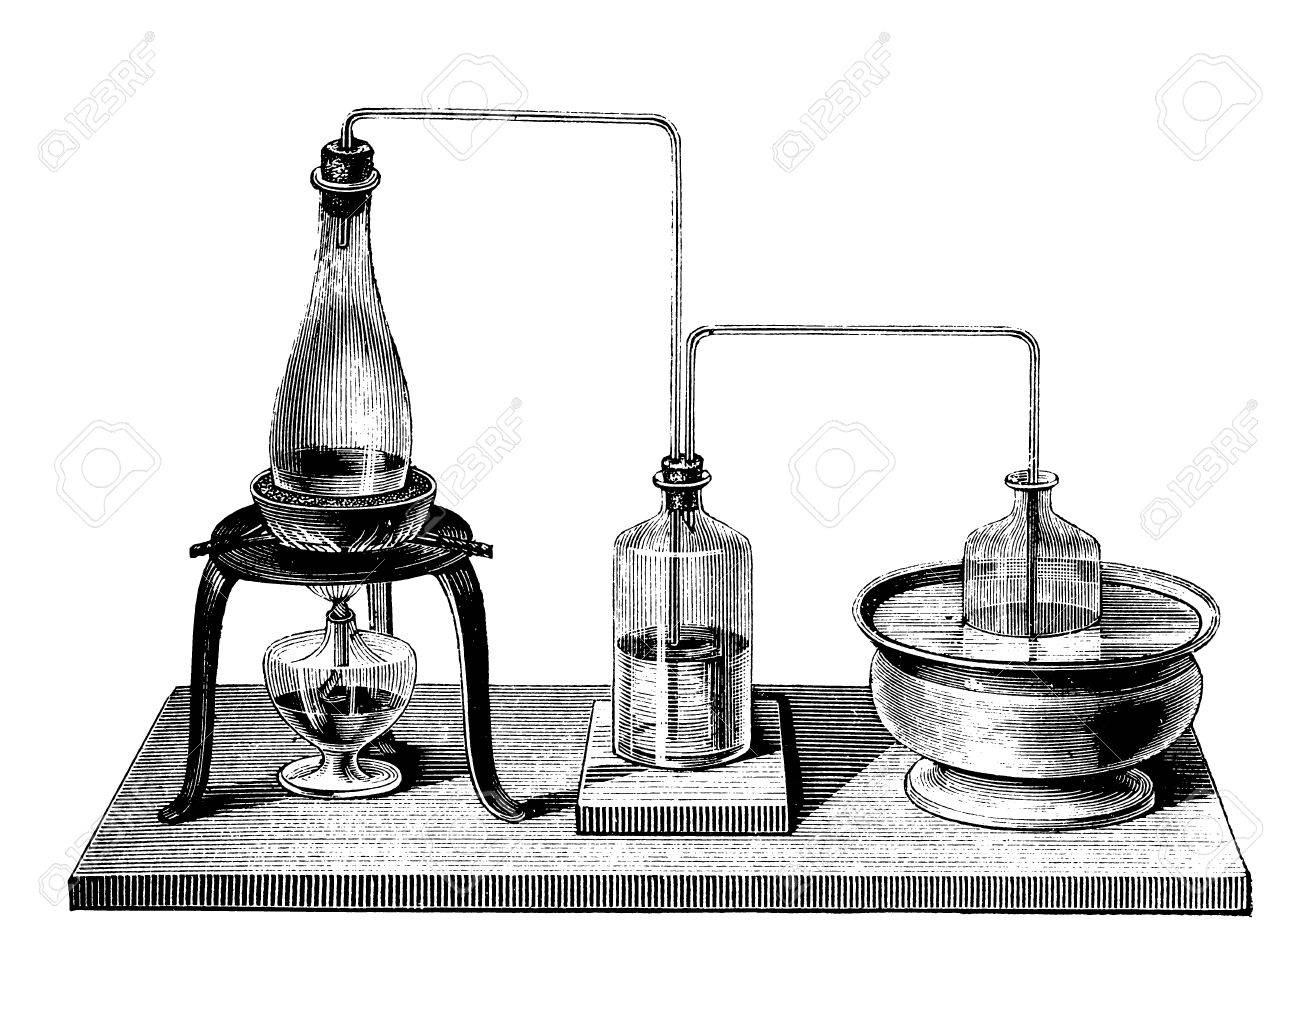 Vintage chemistry equipment, device to perform a double distillation (rectification) by inserting between kettle and condenser an